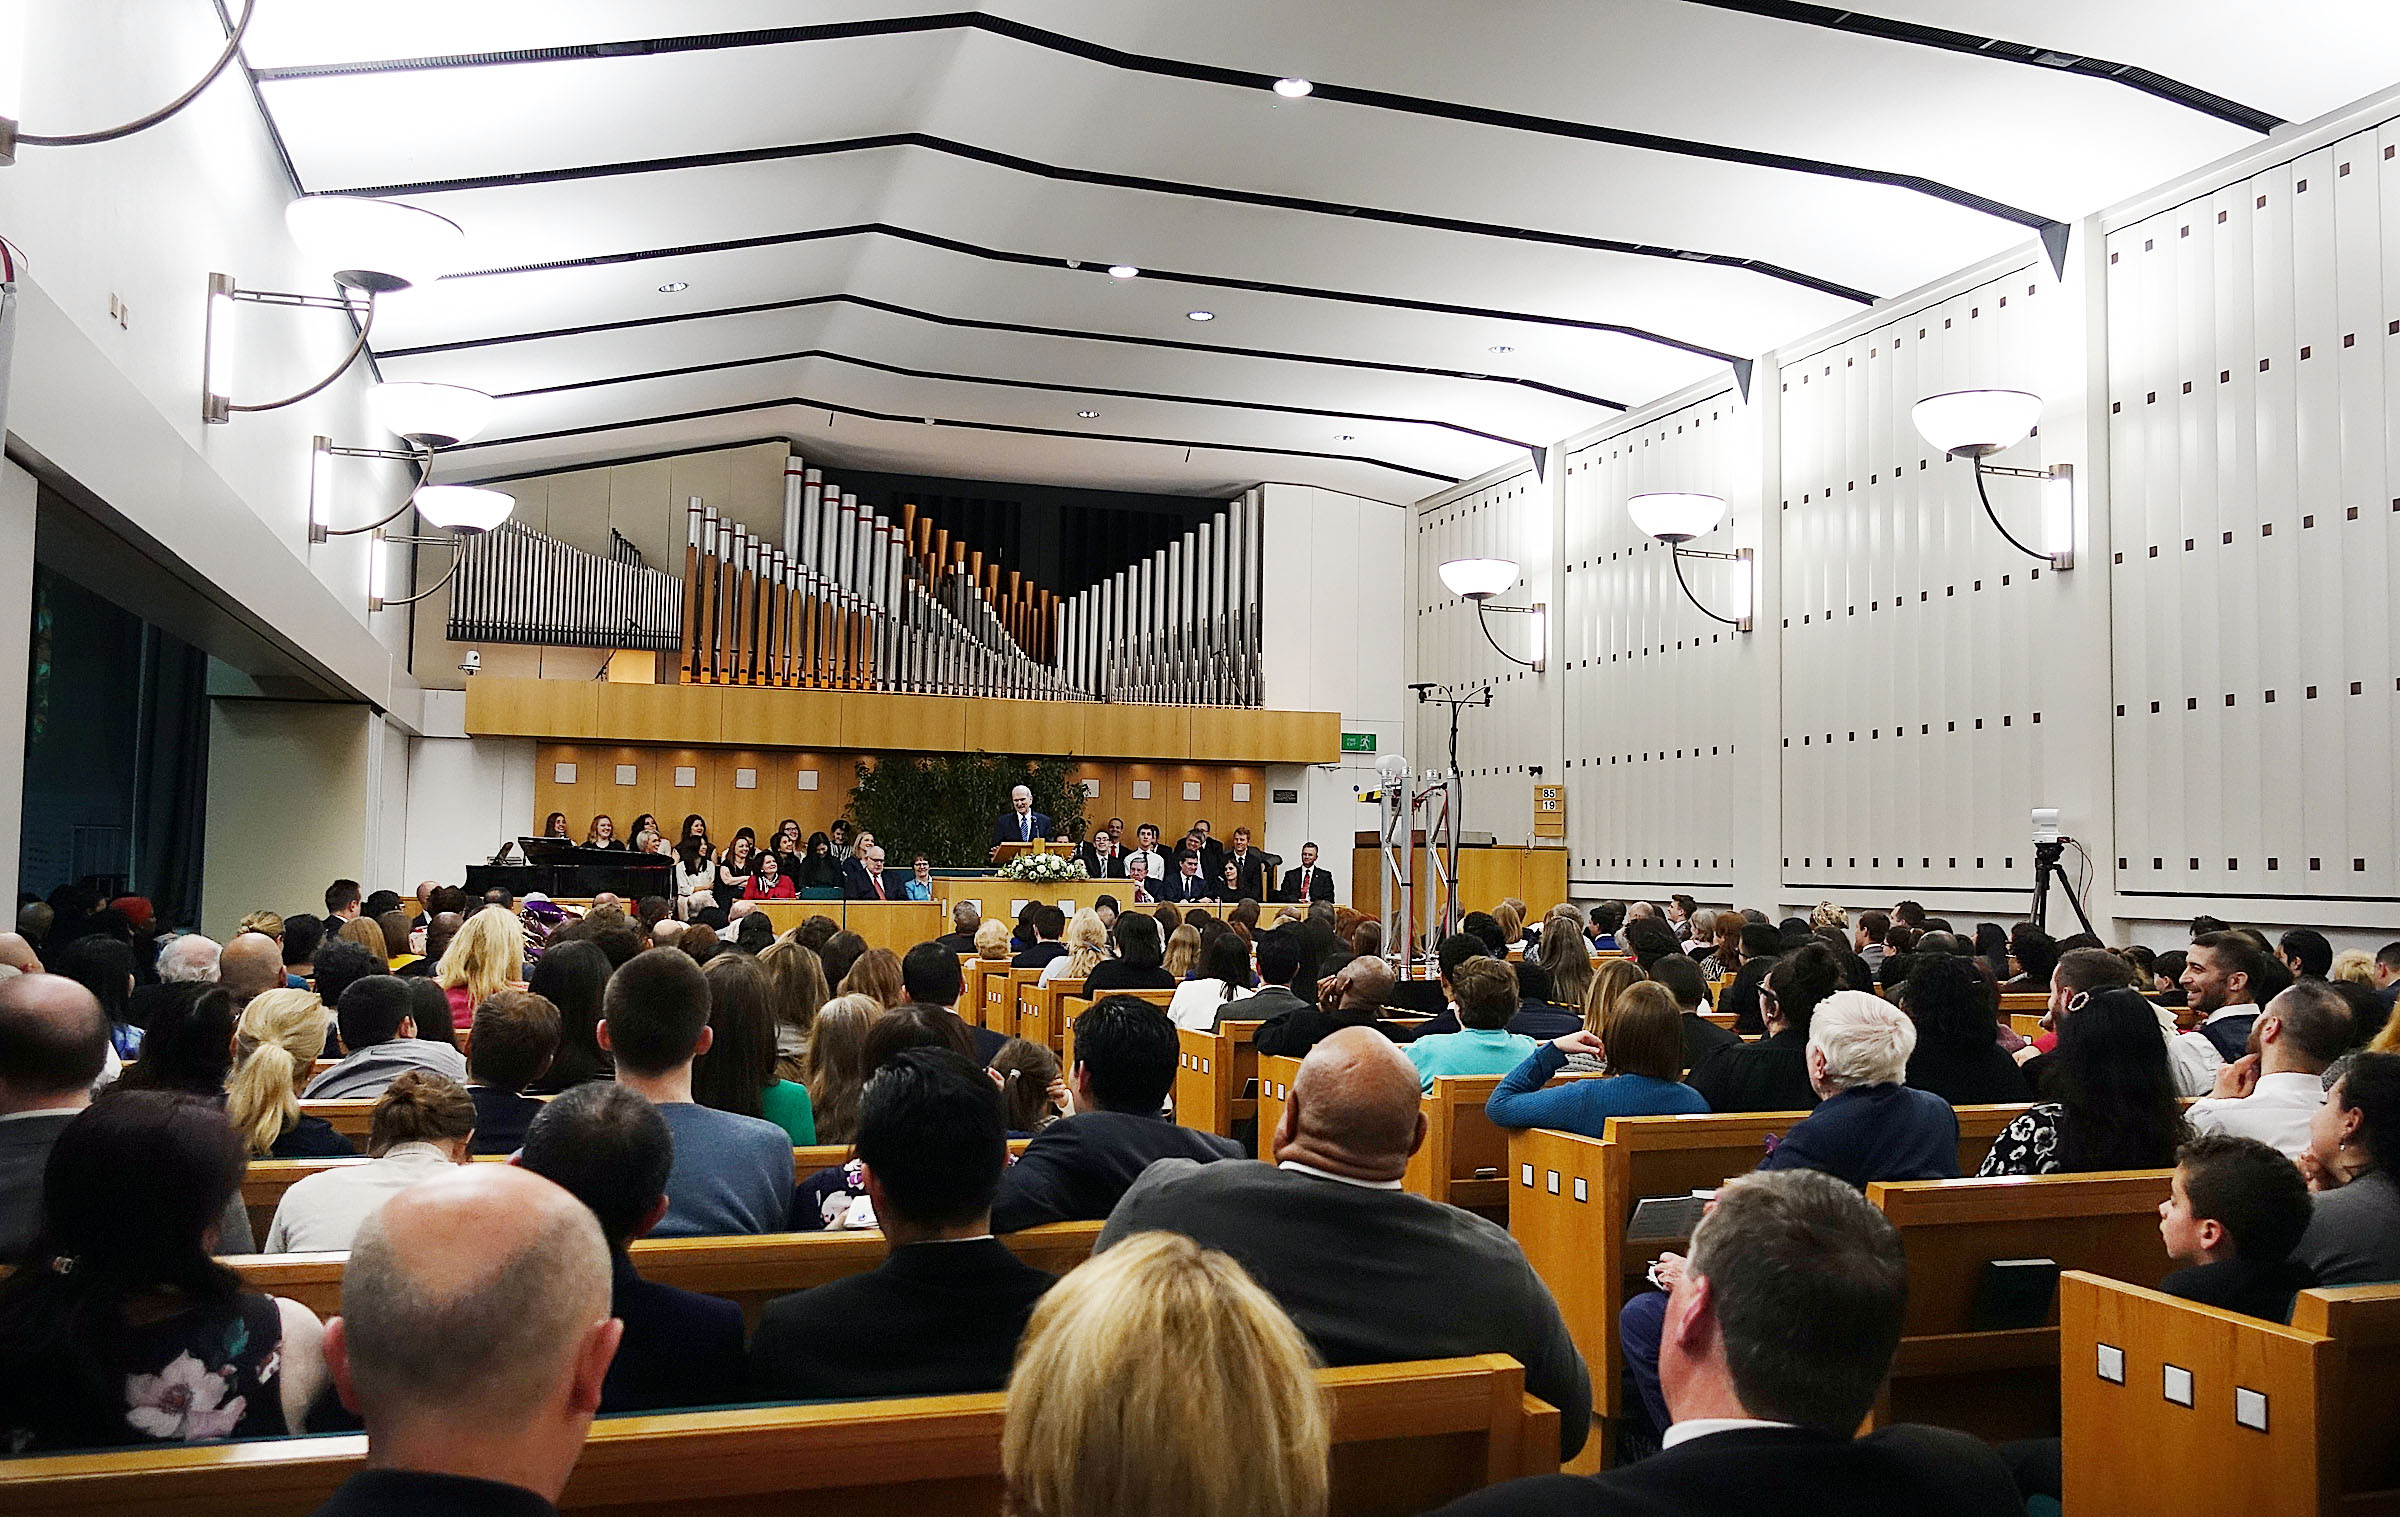 President Russell M. Nelson speaks during a meeting at the Hyde Park Chapel in London on Thursday, April 12, 2018.